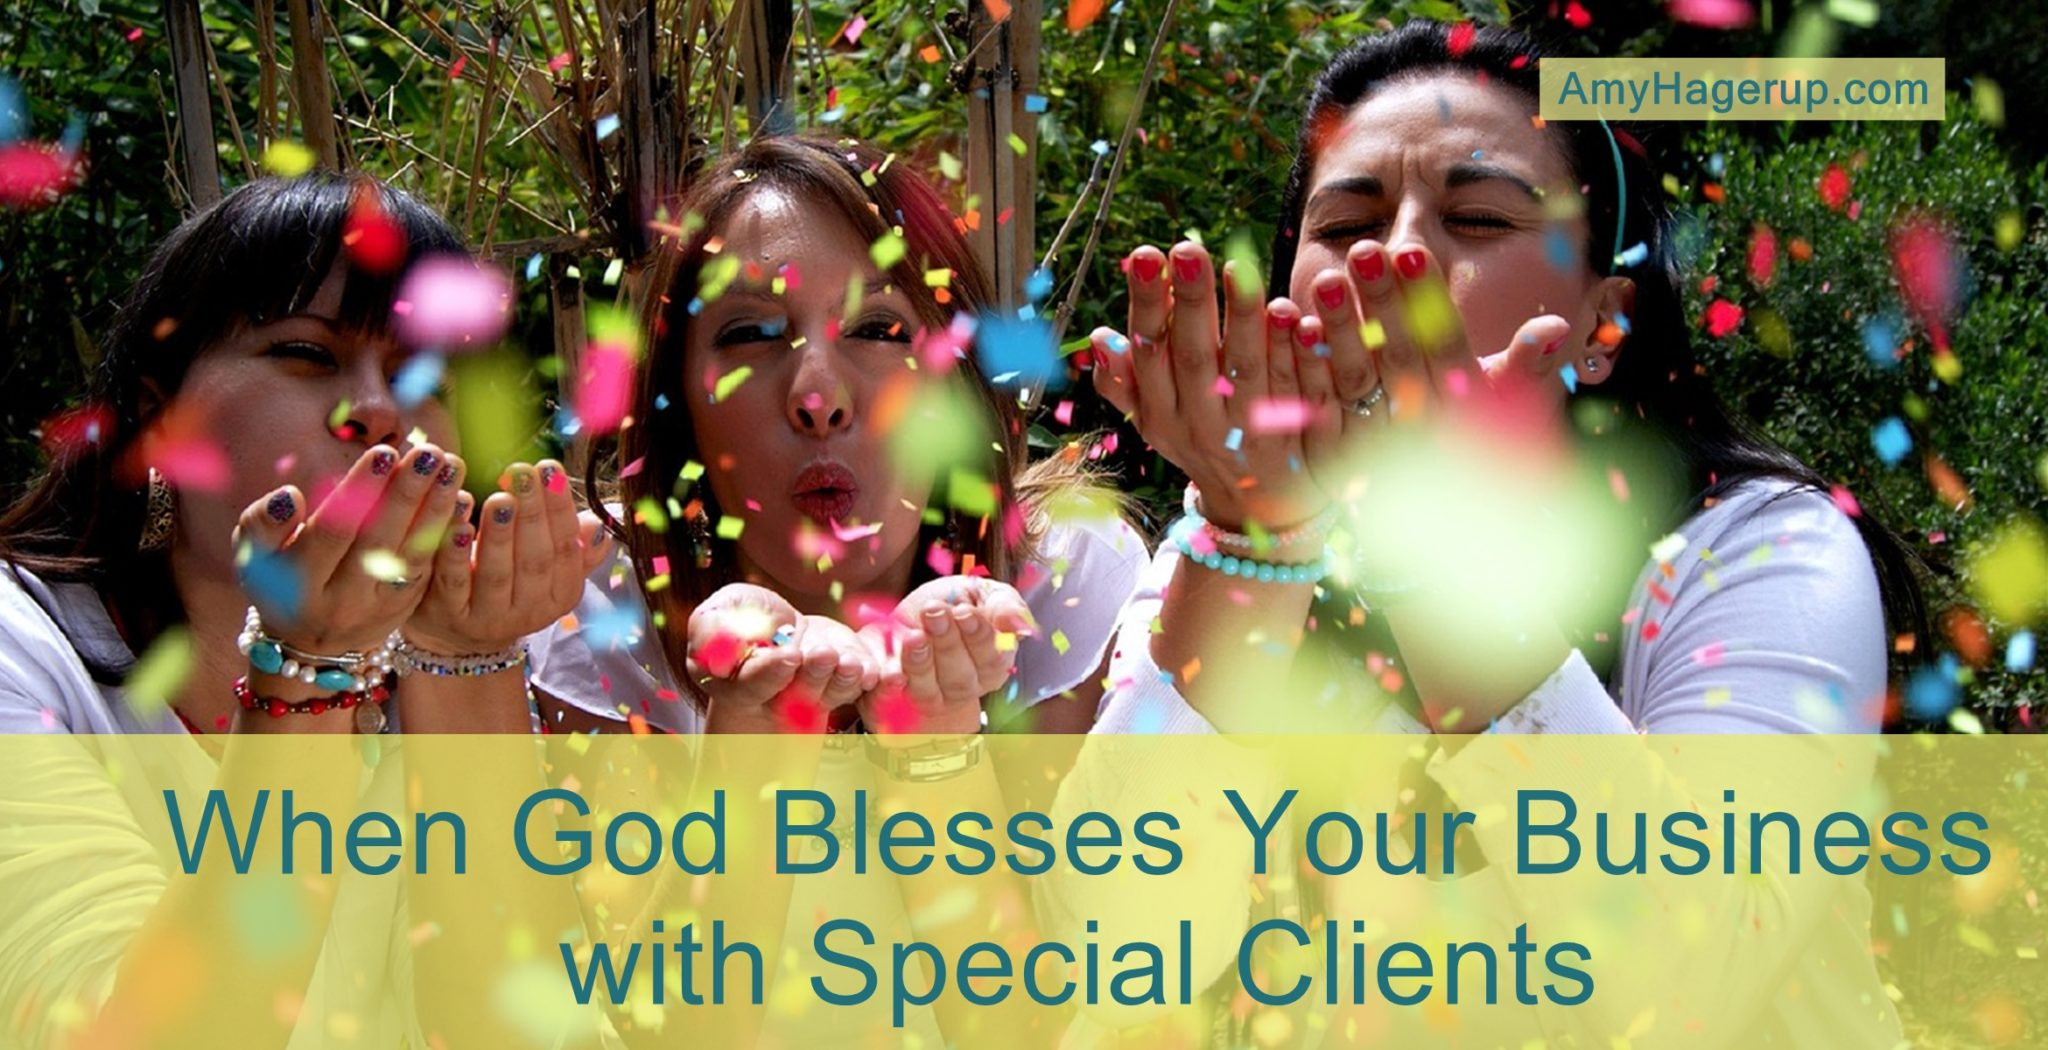 God has a way of blessing us with special clients who become lifelong friends.